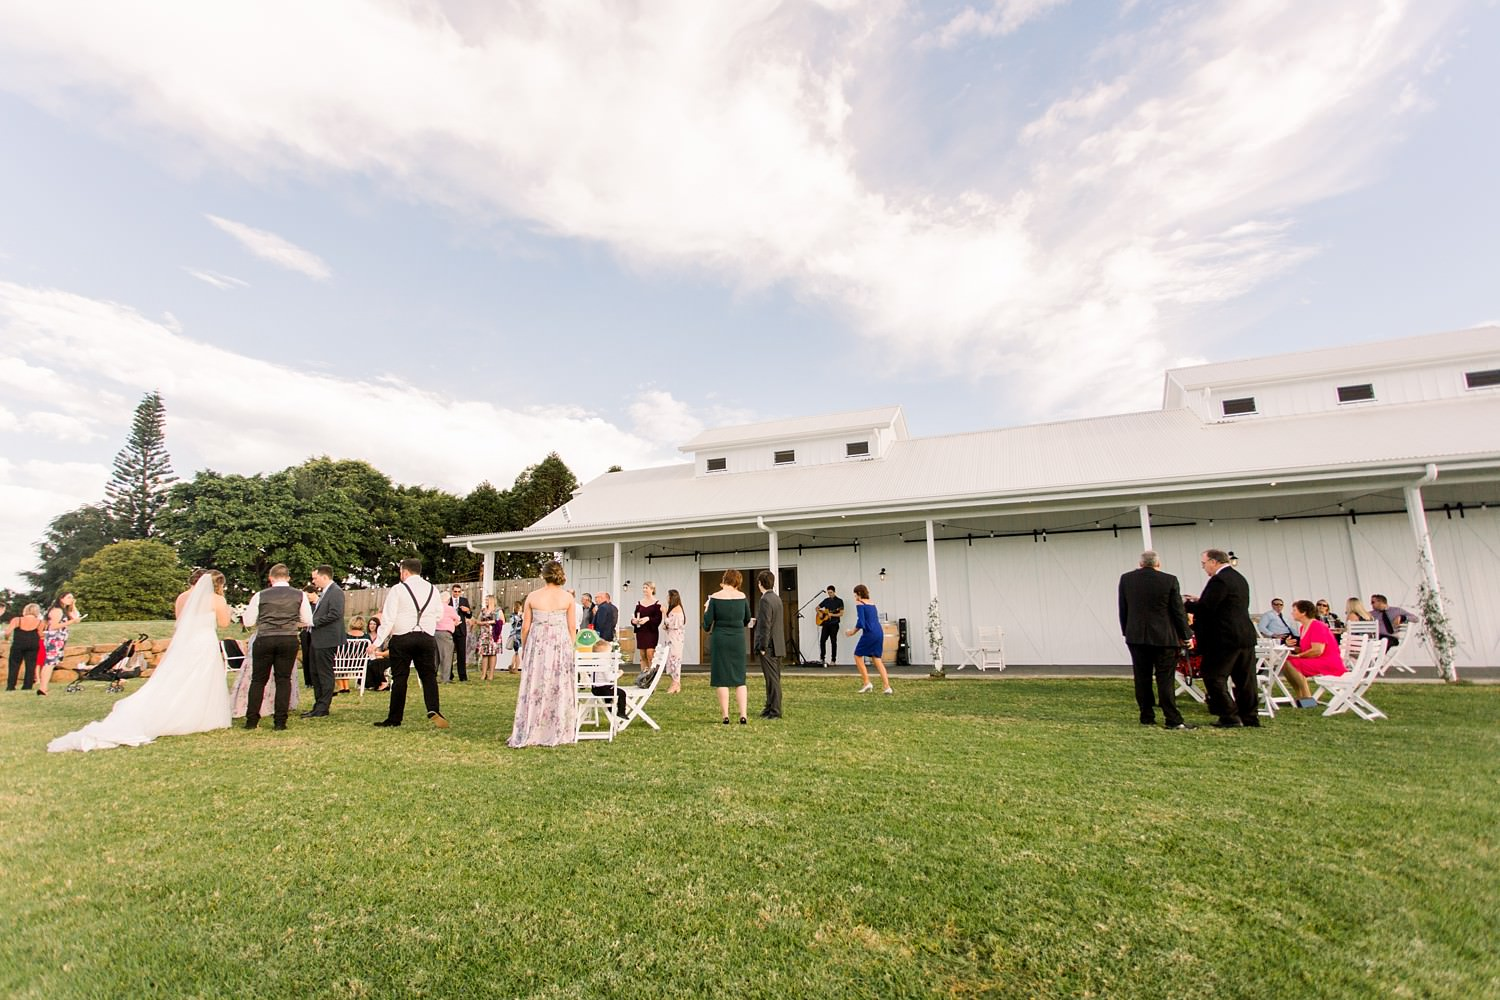 Summergrove Estate Wedding by Mario Colli Photography